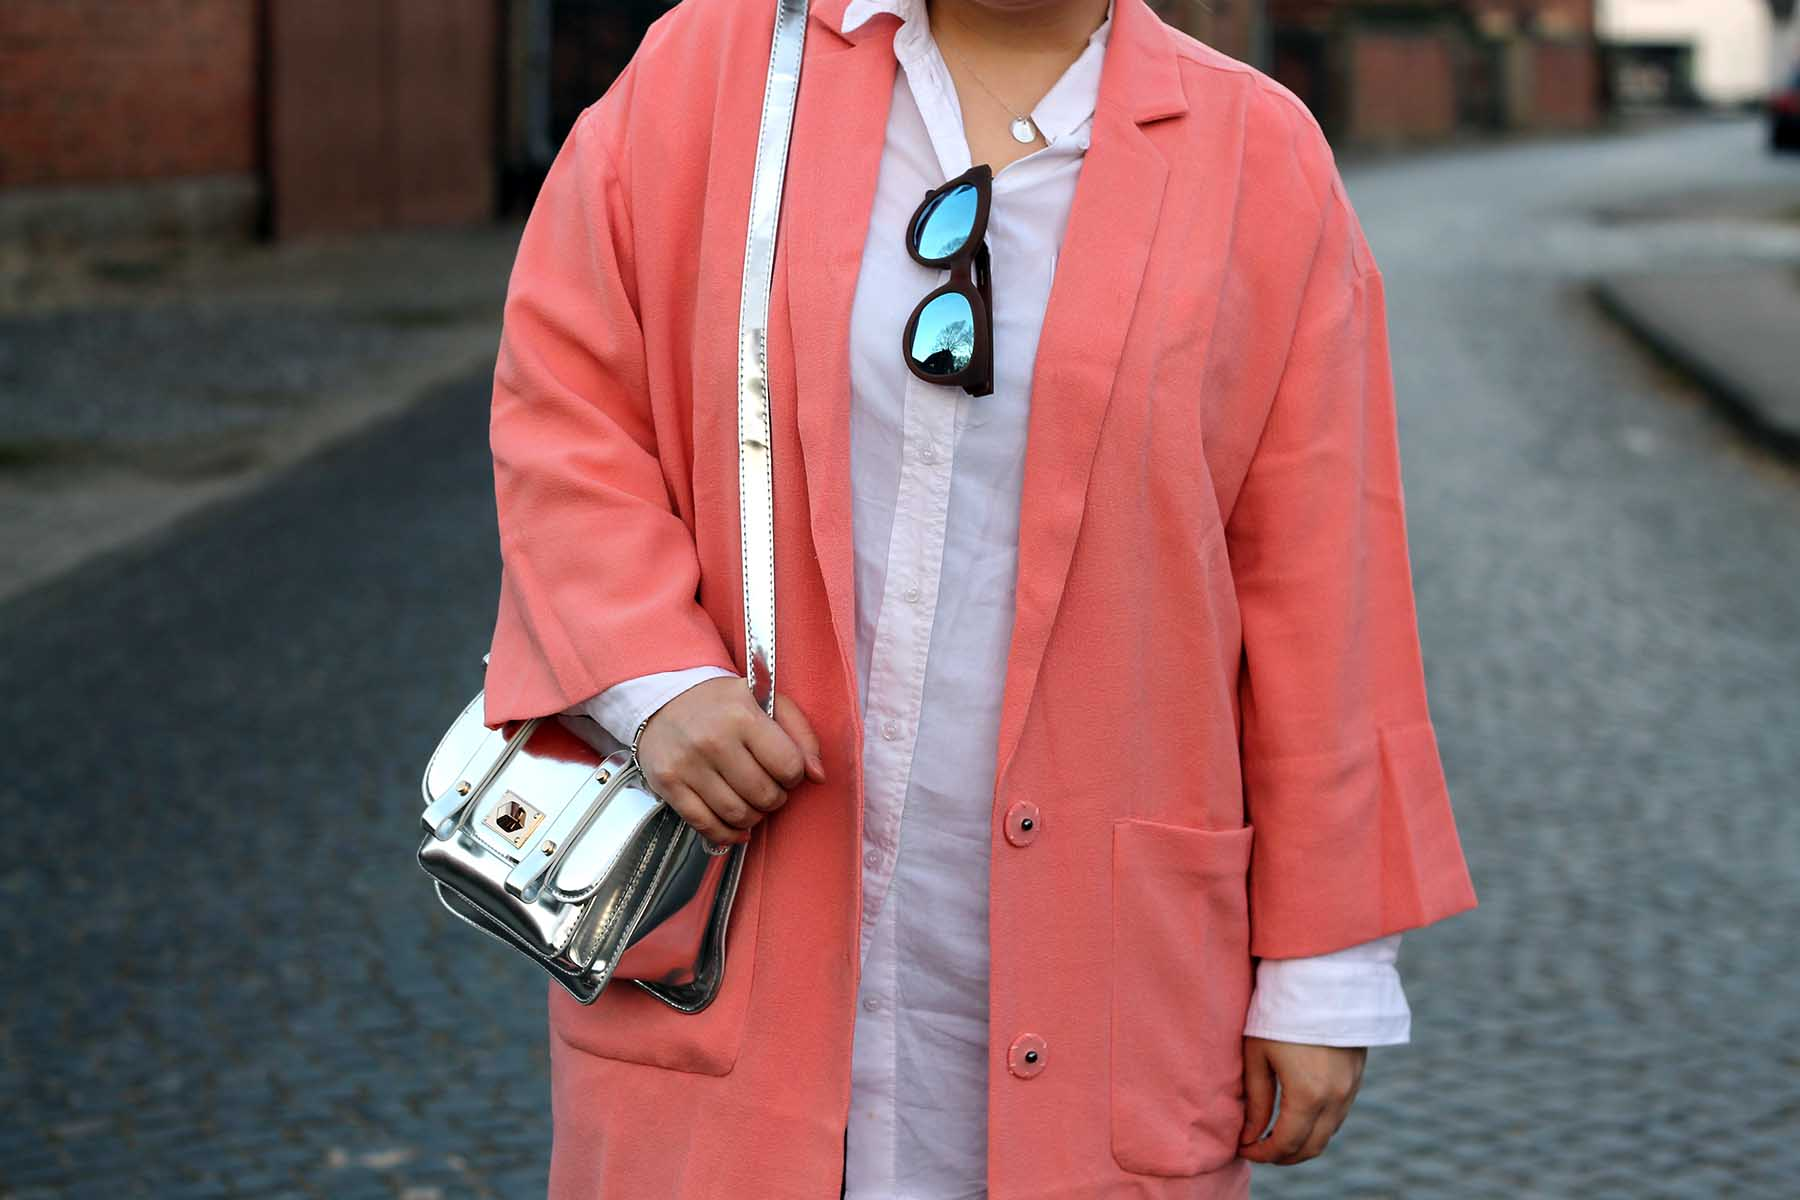 mantel-pink-rosa-frühling-outfit-look-silberne-tasche